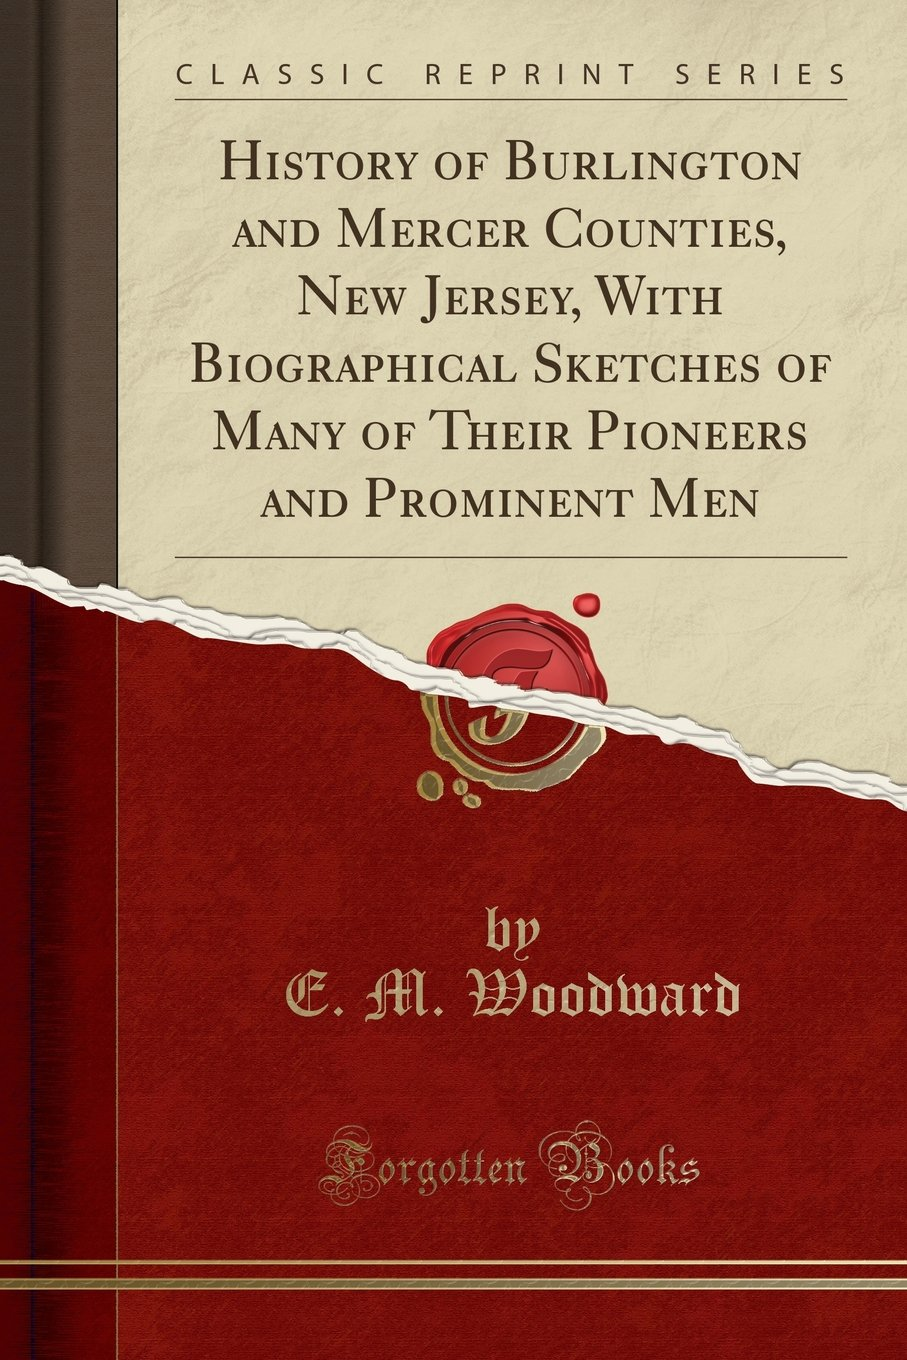 History of Burlington and Mercer Counties, New Jersey, With Biographical Sketches of Many of Their Pioneers and Prominent Men (Classic Reprint)